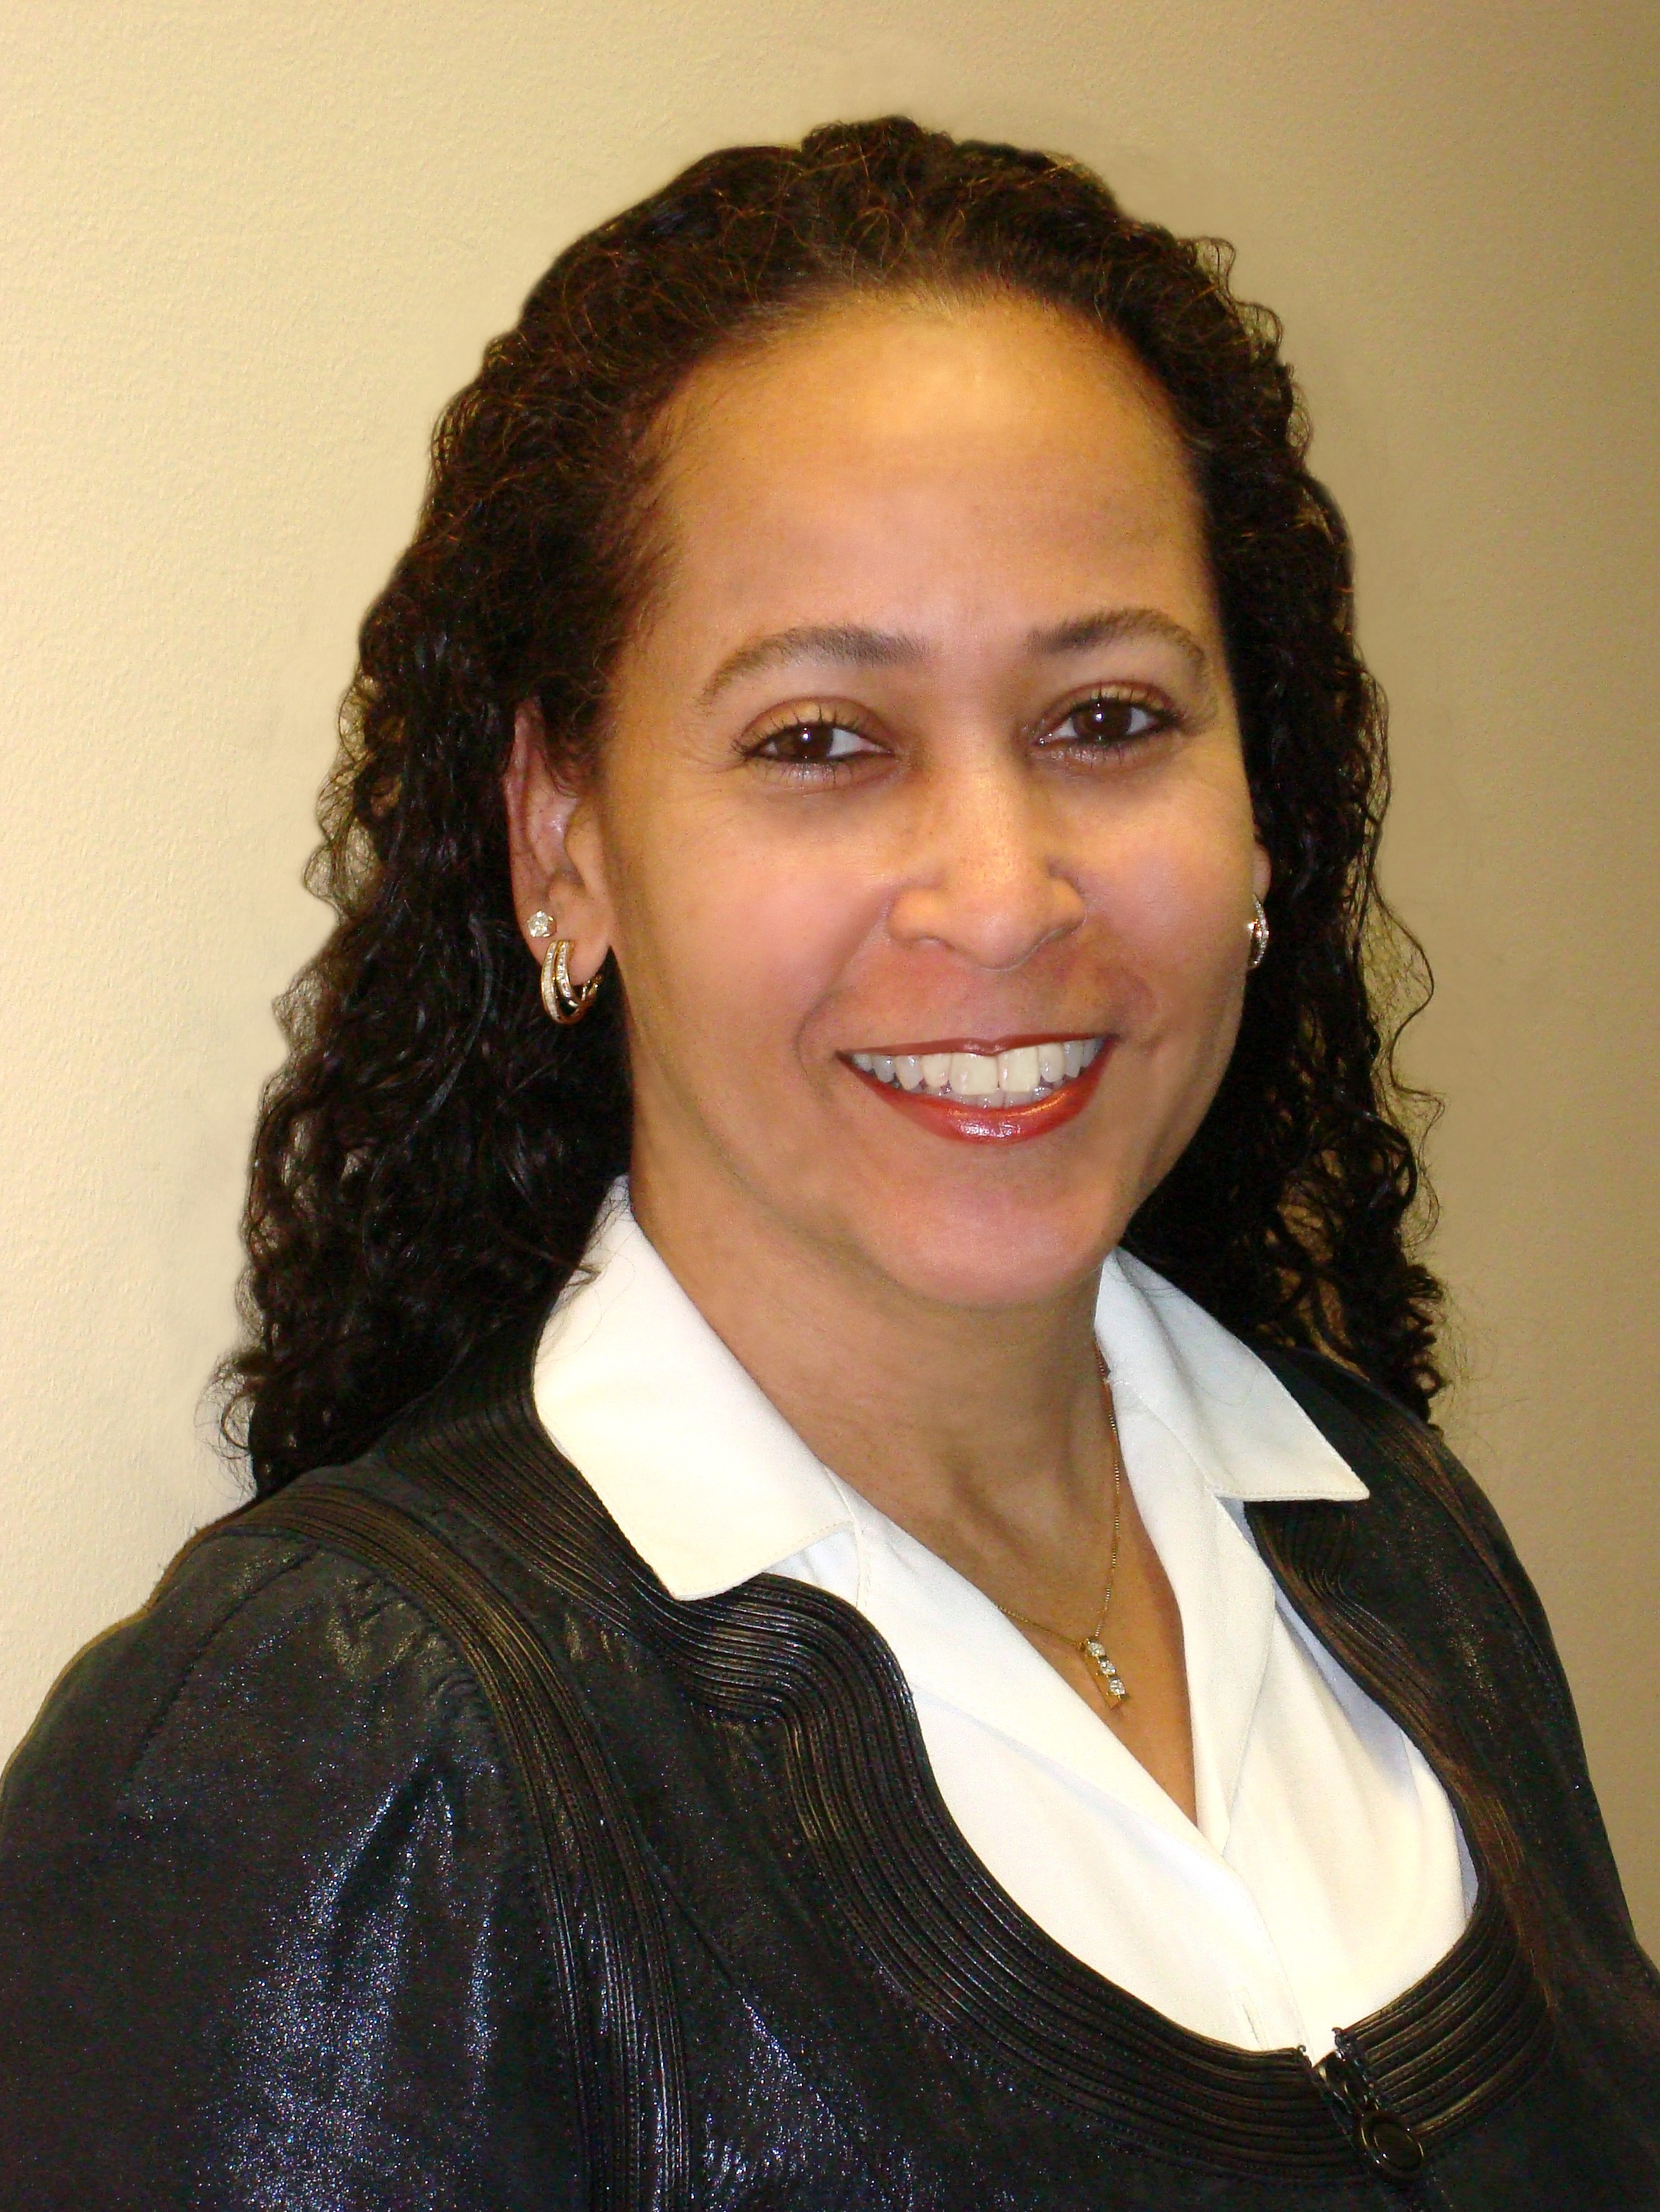 Barbara Winfield, Office Manager, Ken Leiner Associates, The Search Firm for Technology Companies